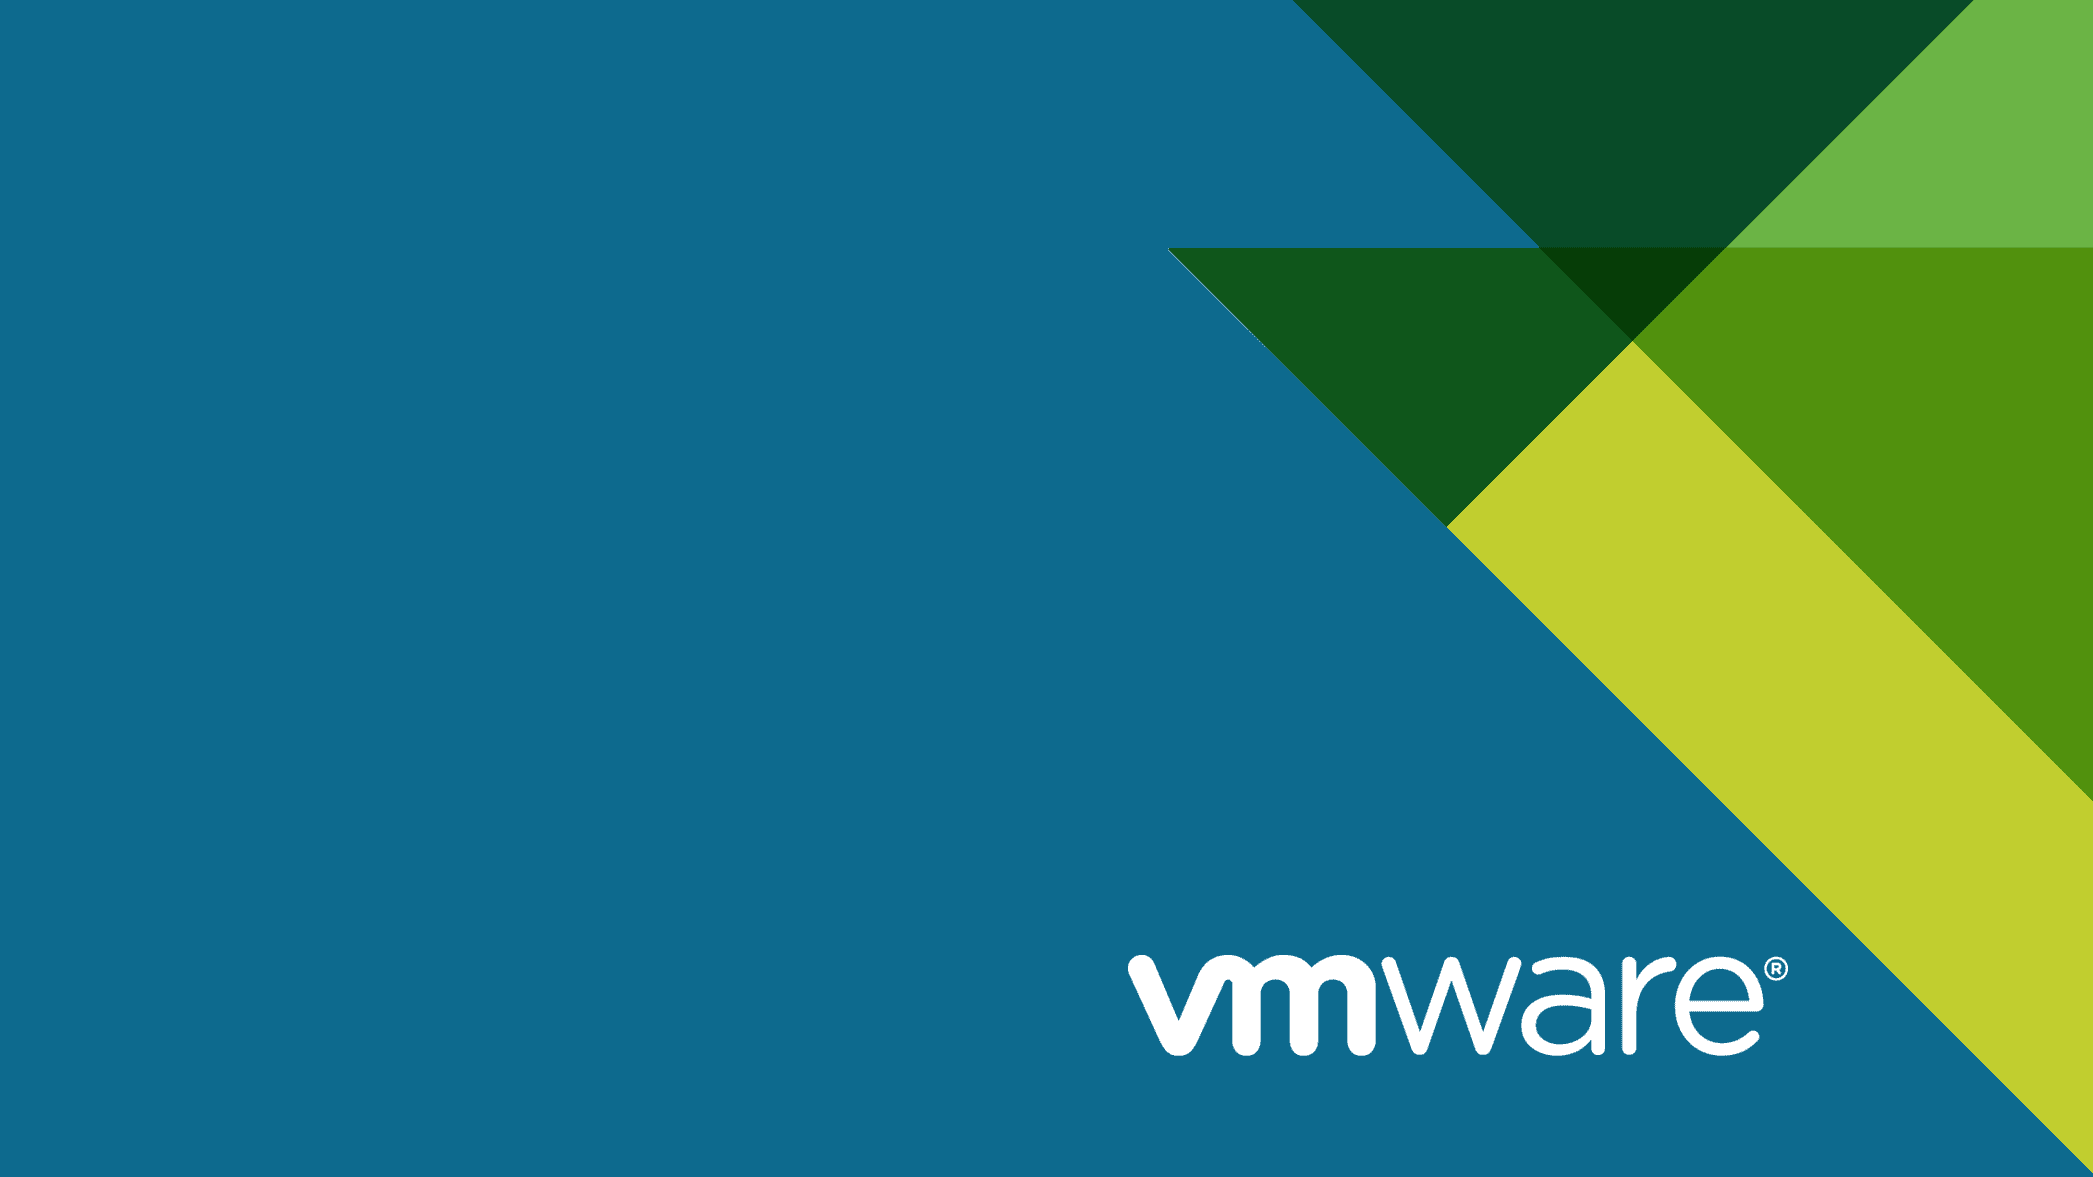 El curso VMware del verano: Install, Configure and Manage